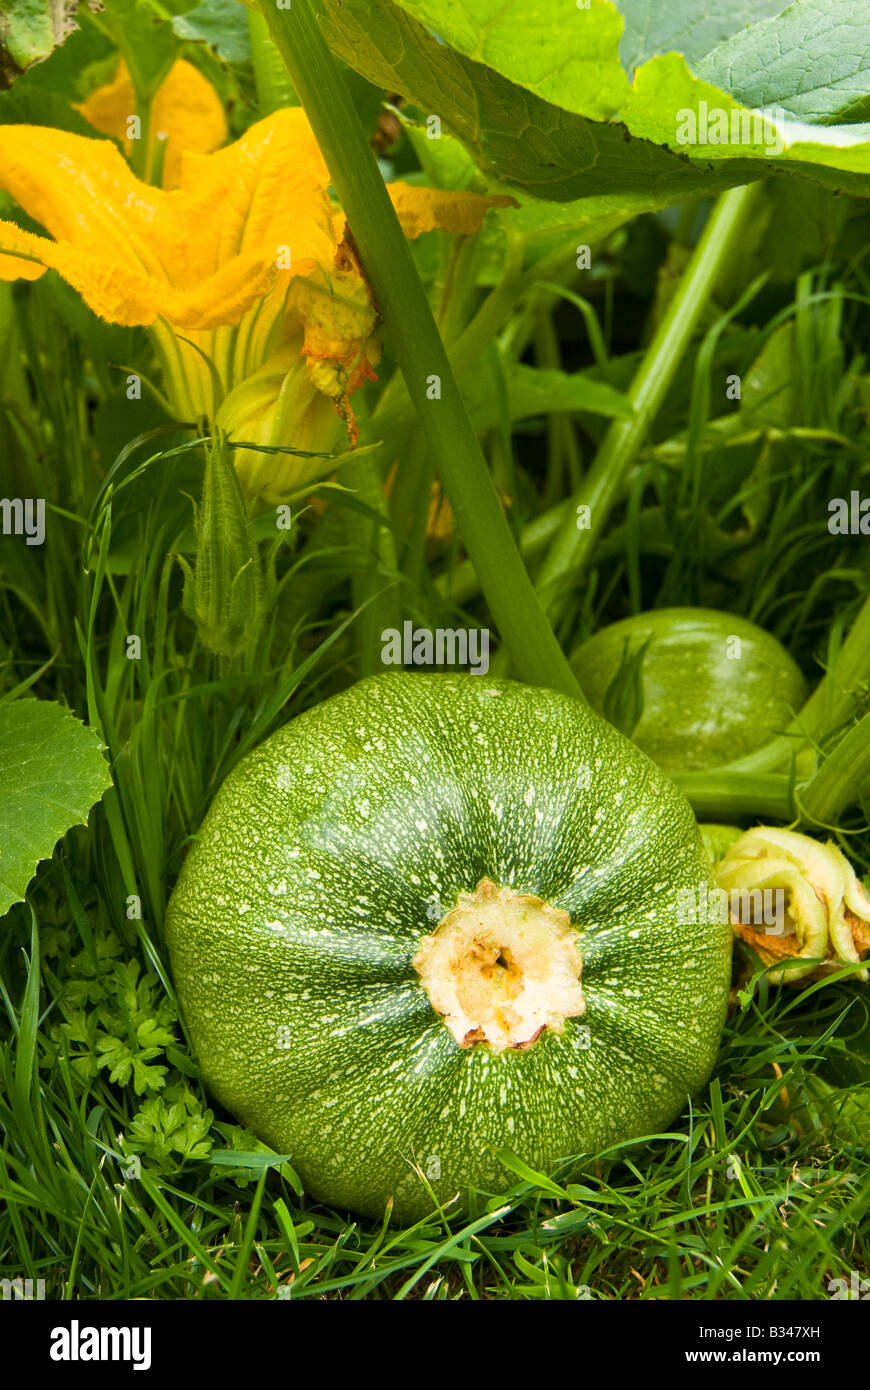 Round Courgette & Courgette Flower (Courgette Tondo Di Toscana) Growing in the Garden, Kent. England. - Stock Image